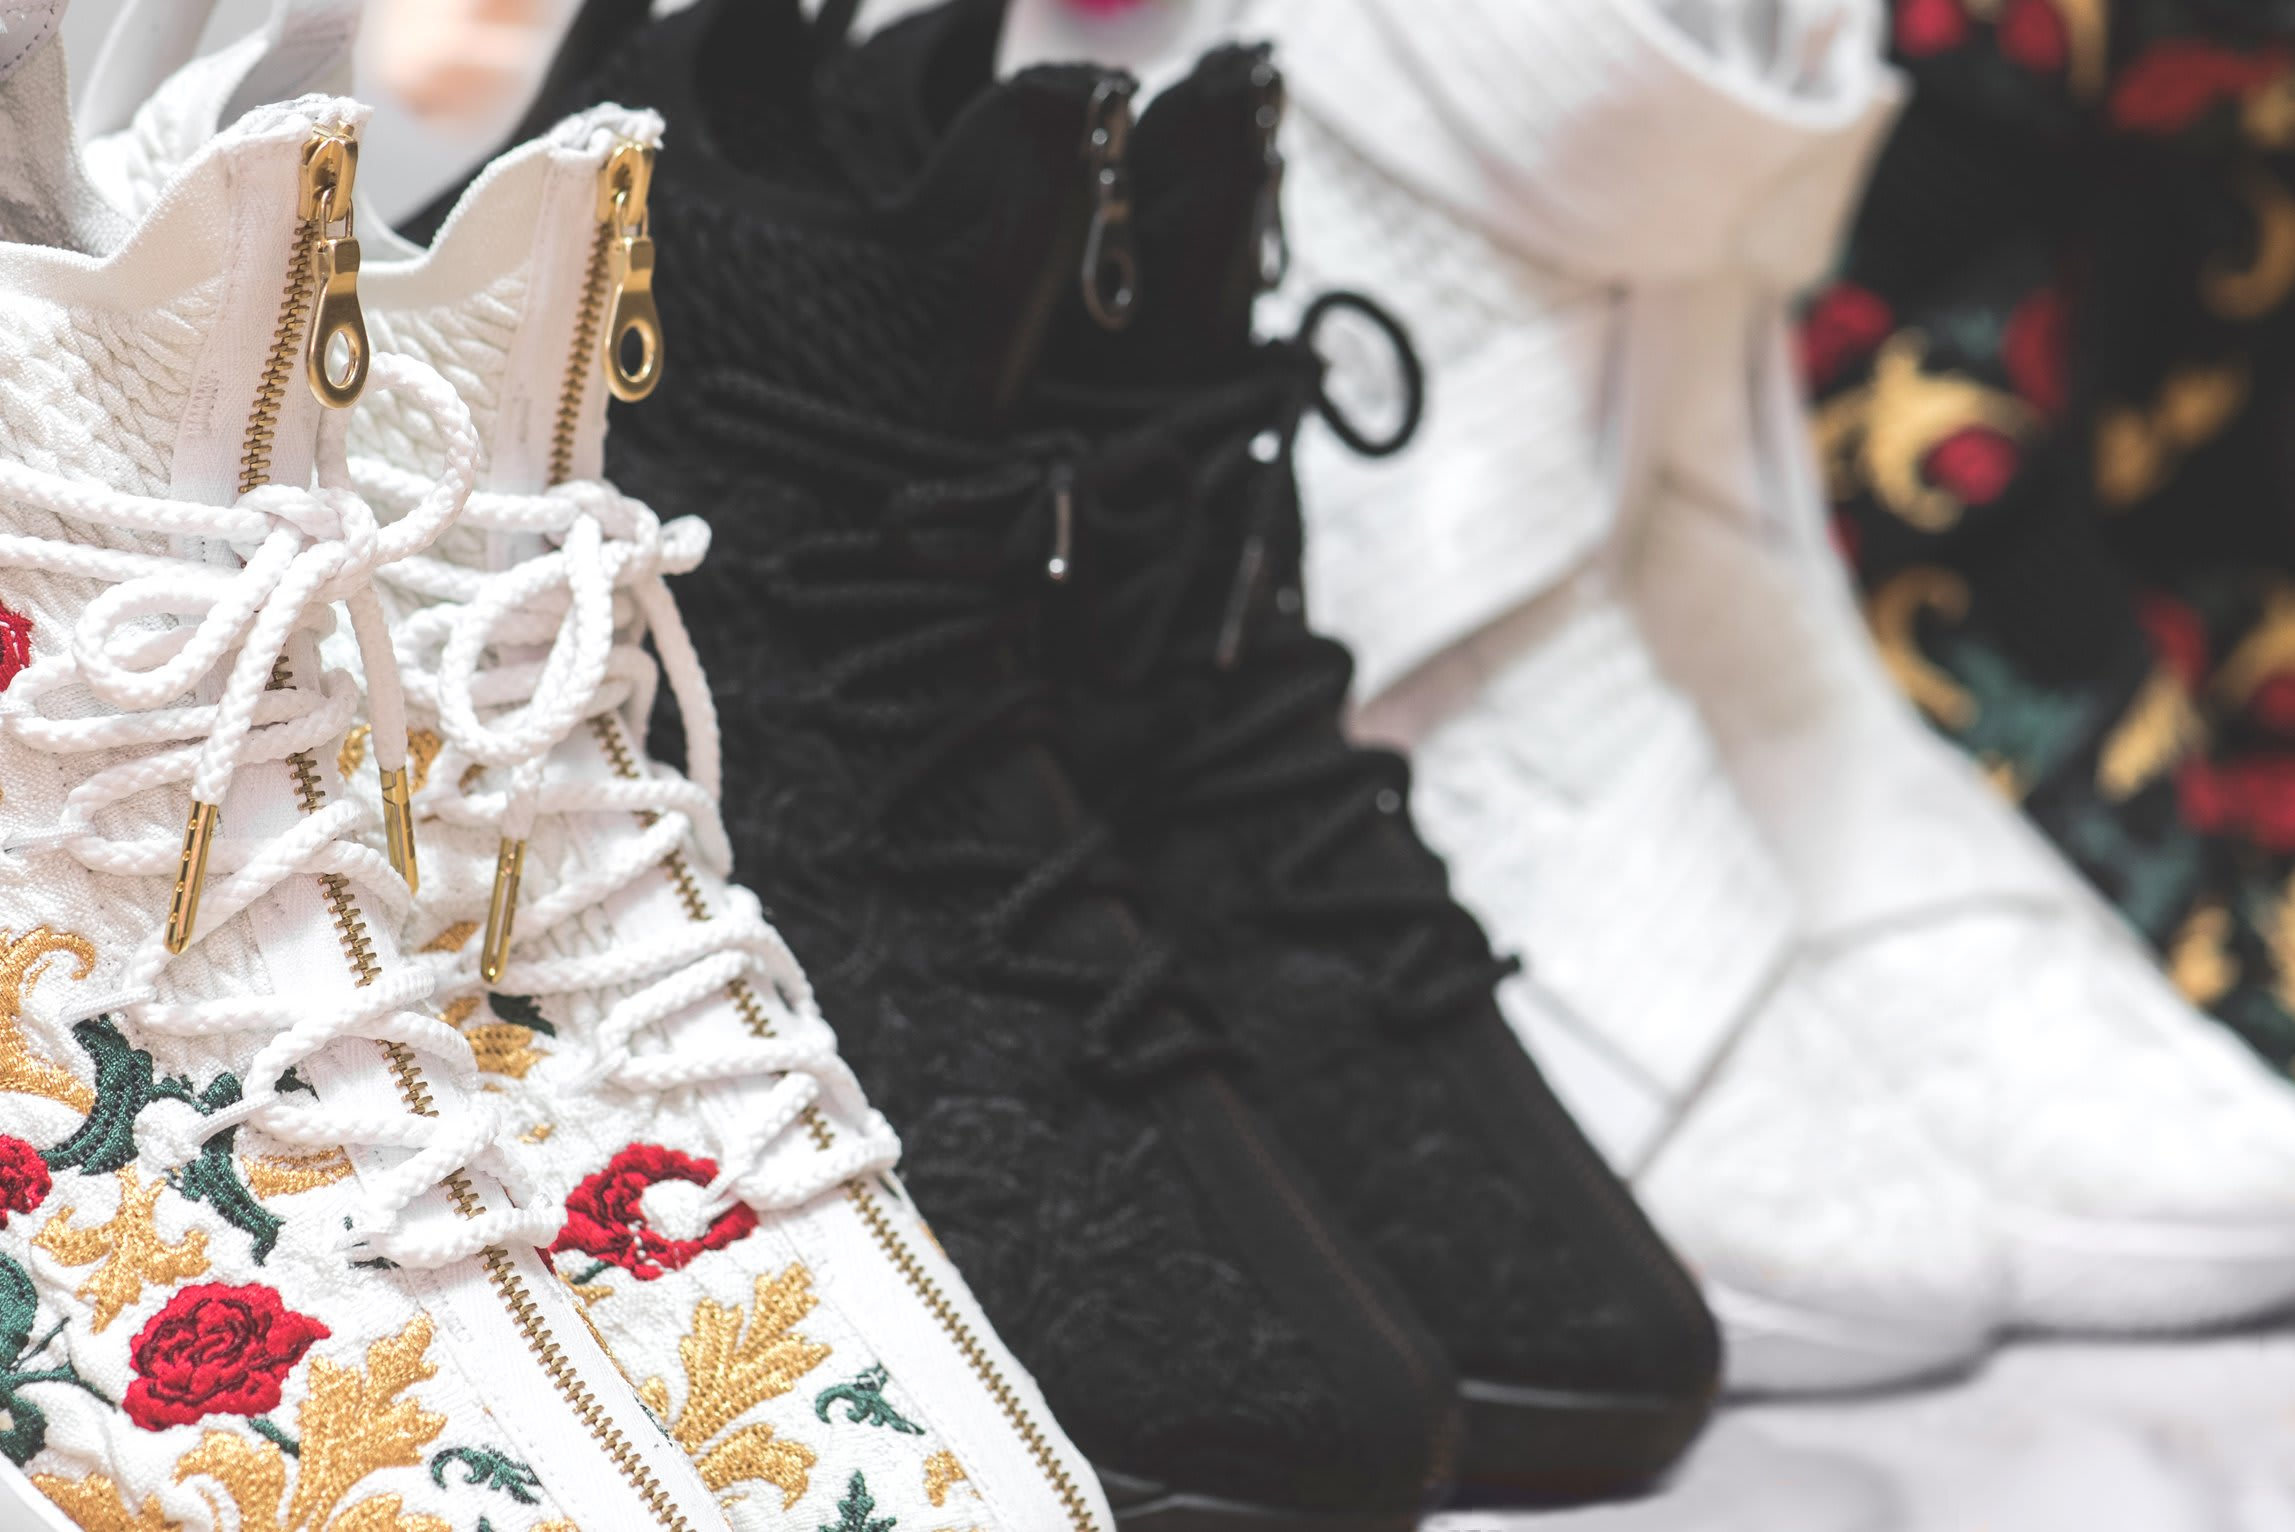 Kith x Nike LeBron 15 'Long Live the King' Chapter 2 Collection 2